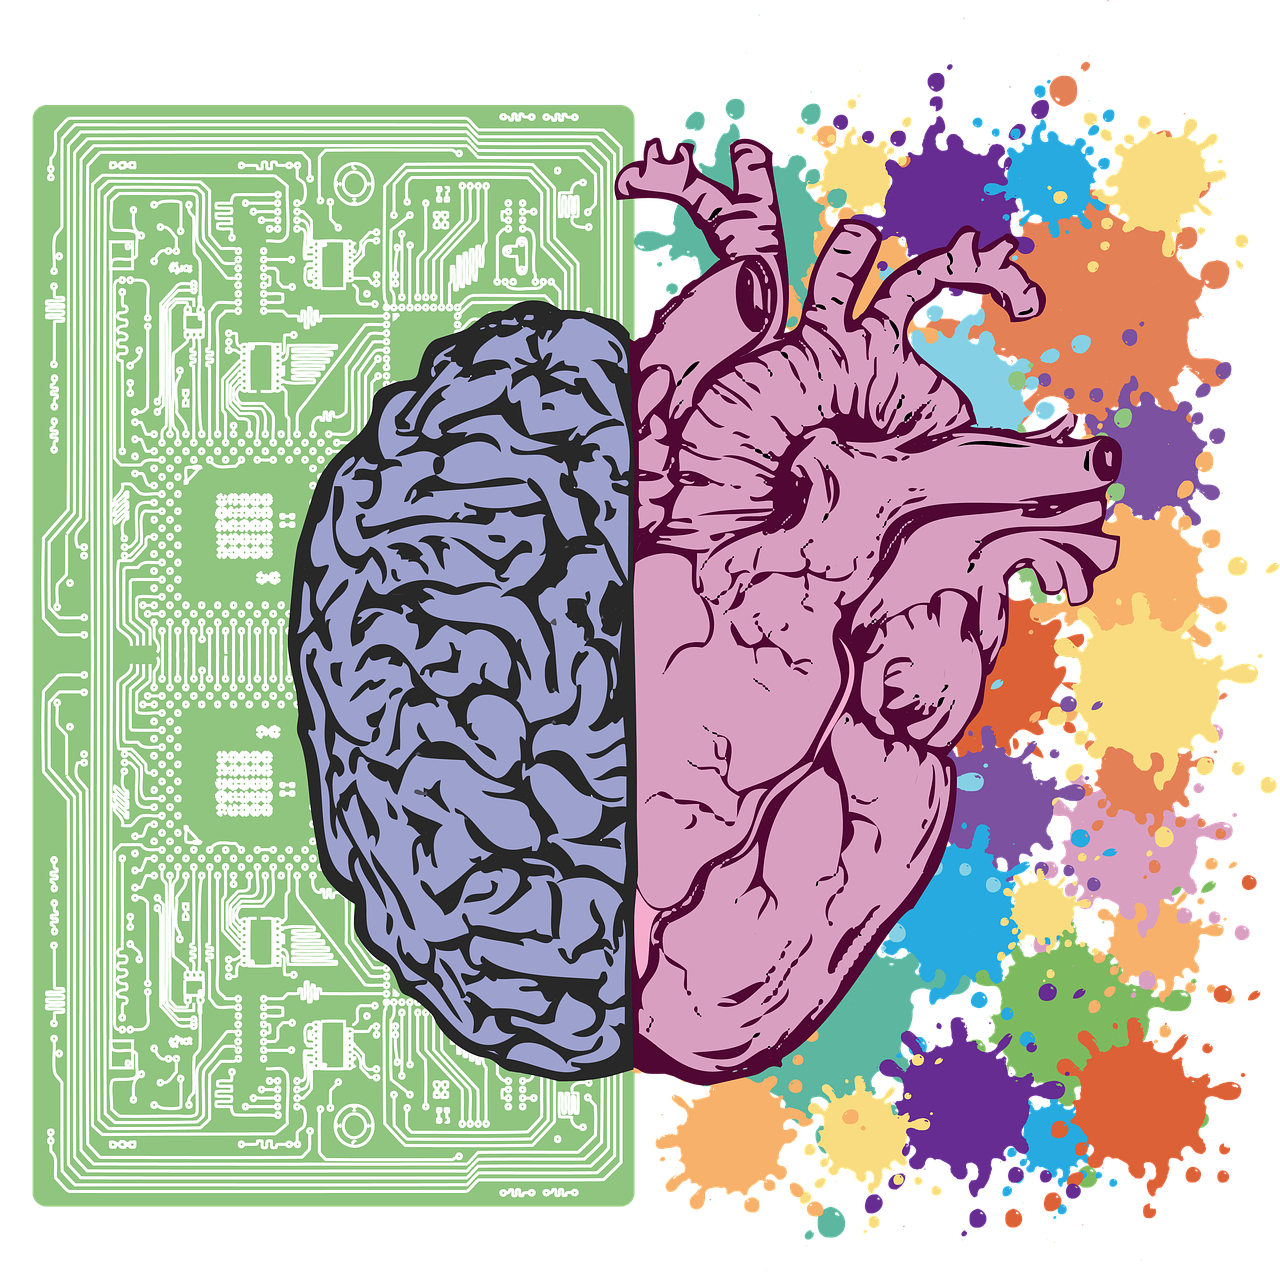 Picture of an illustrated brain with a computer motherboard behind it